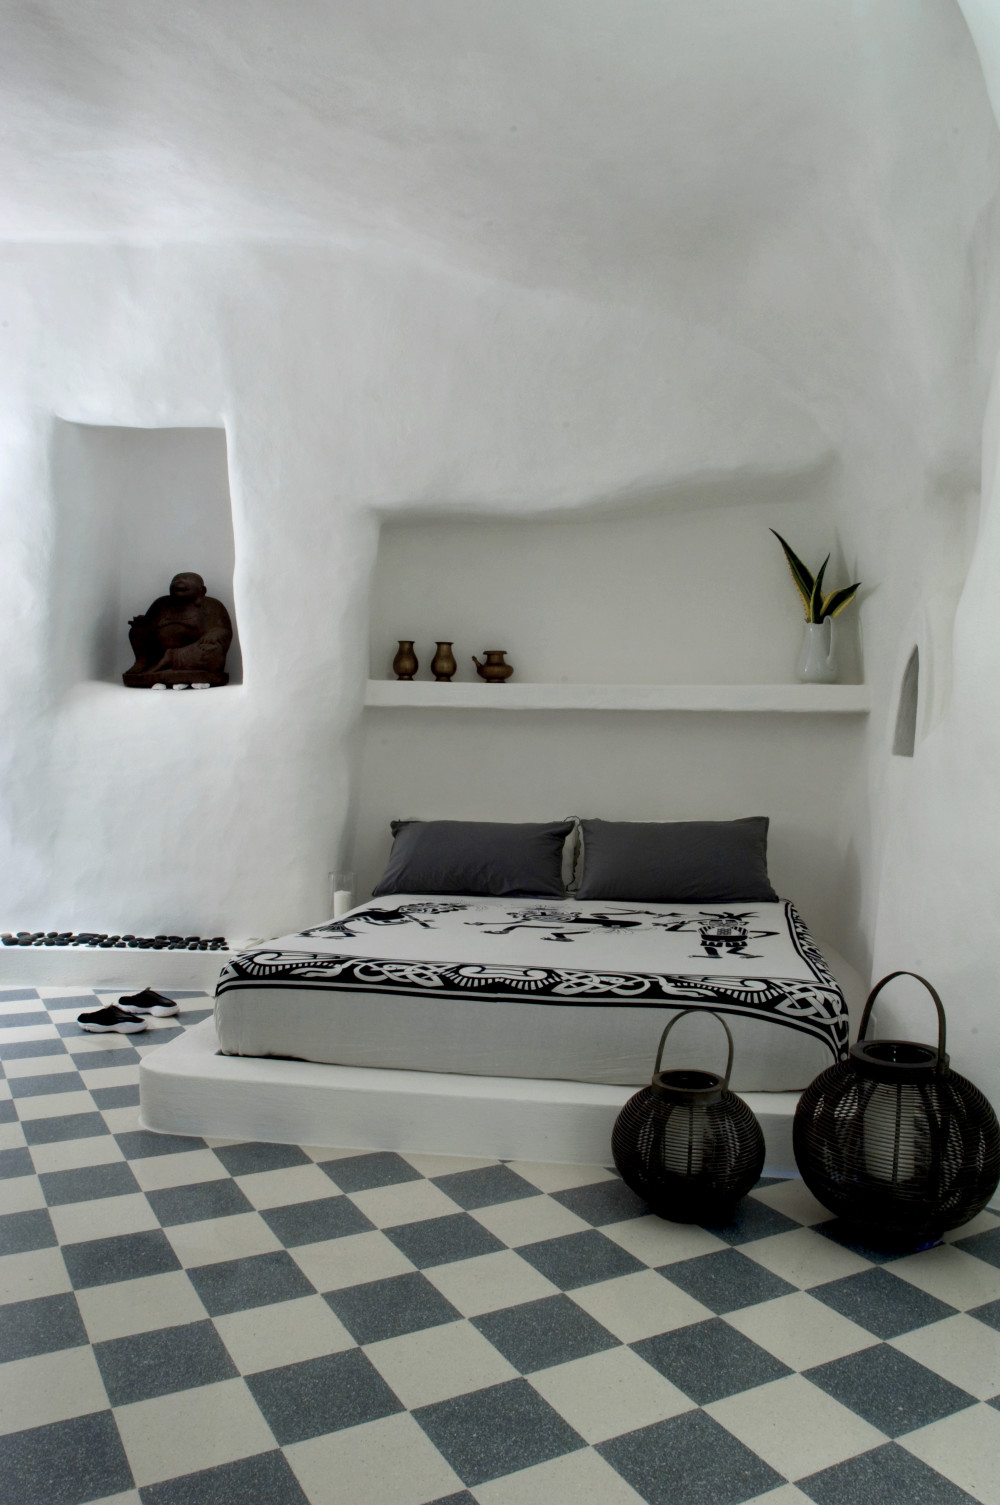 The master bedroom: the oldest area in the house, dug into the grottoes and whitewashed.